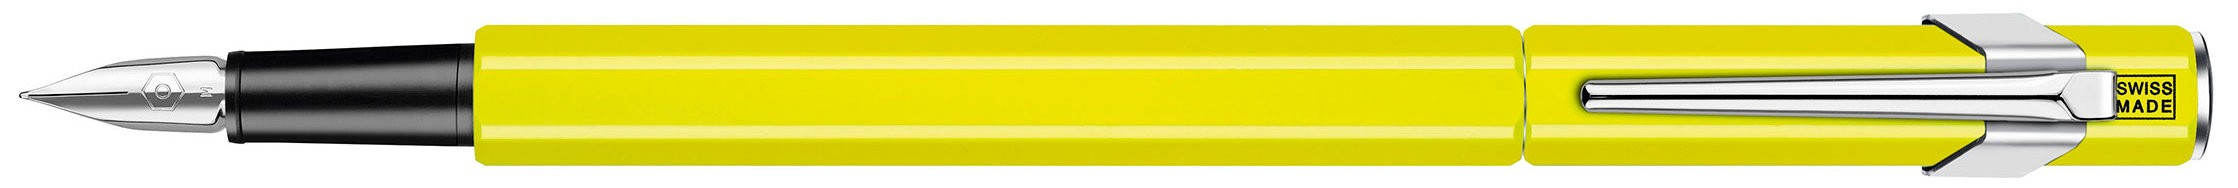 Перьевая ручка Caran d'Ache Office 849 Fluo Yellow